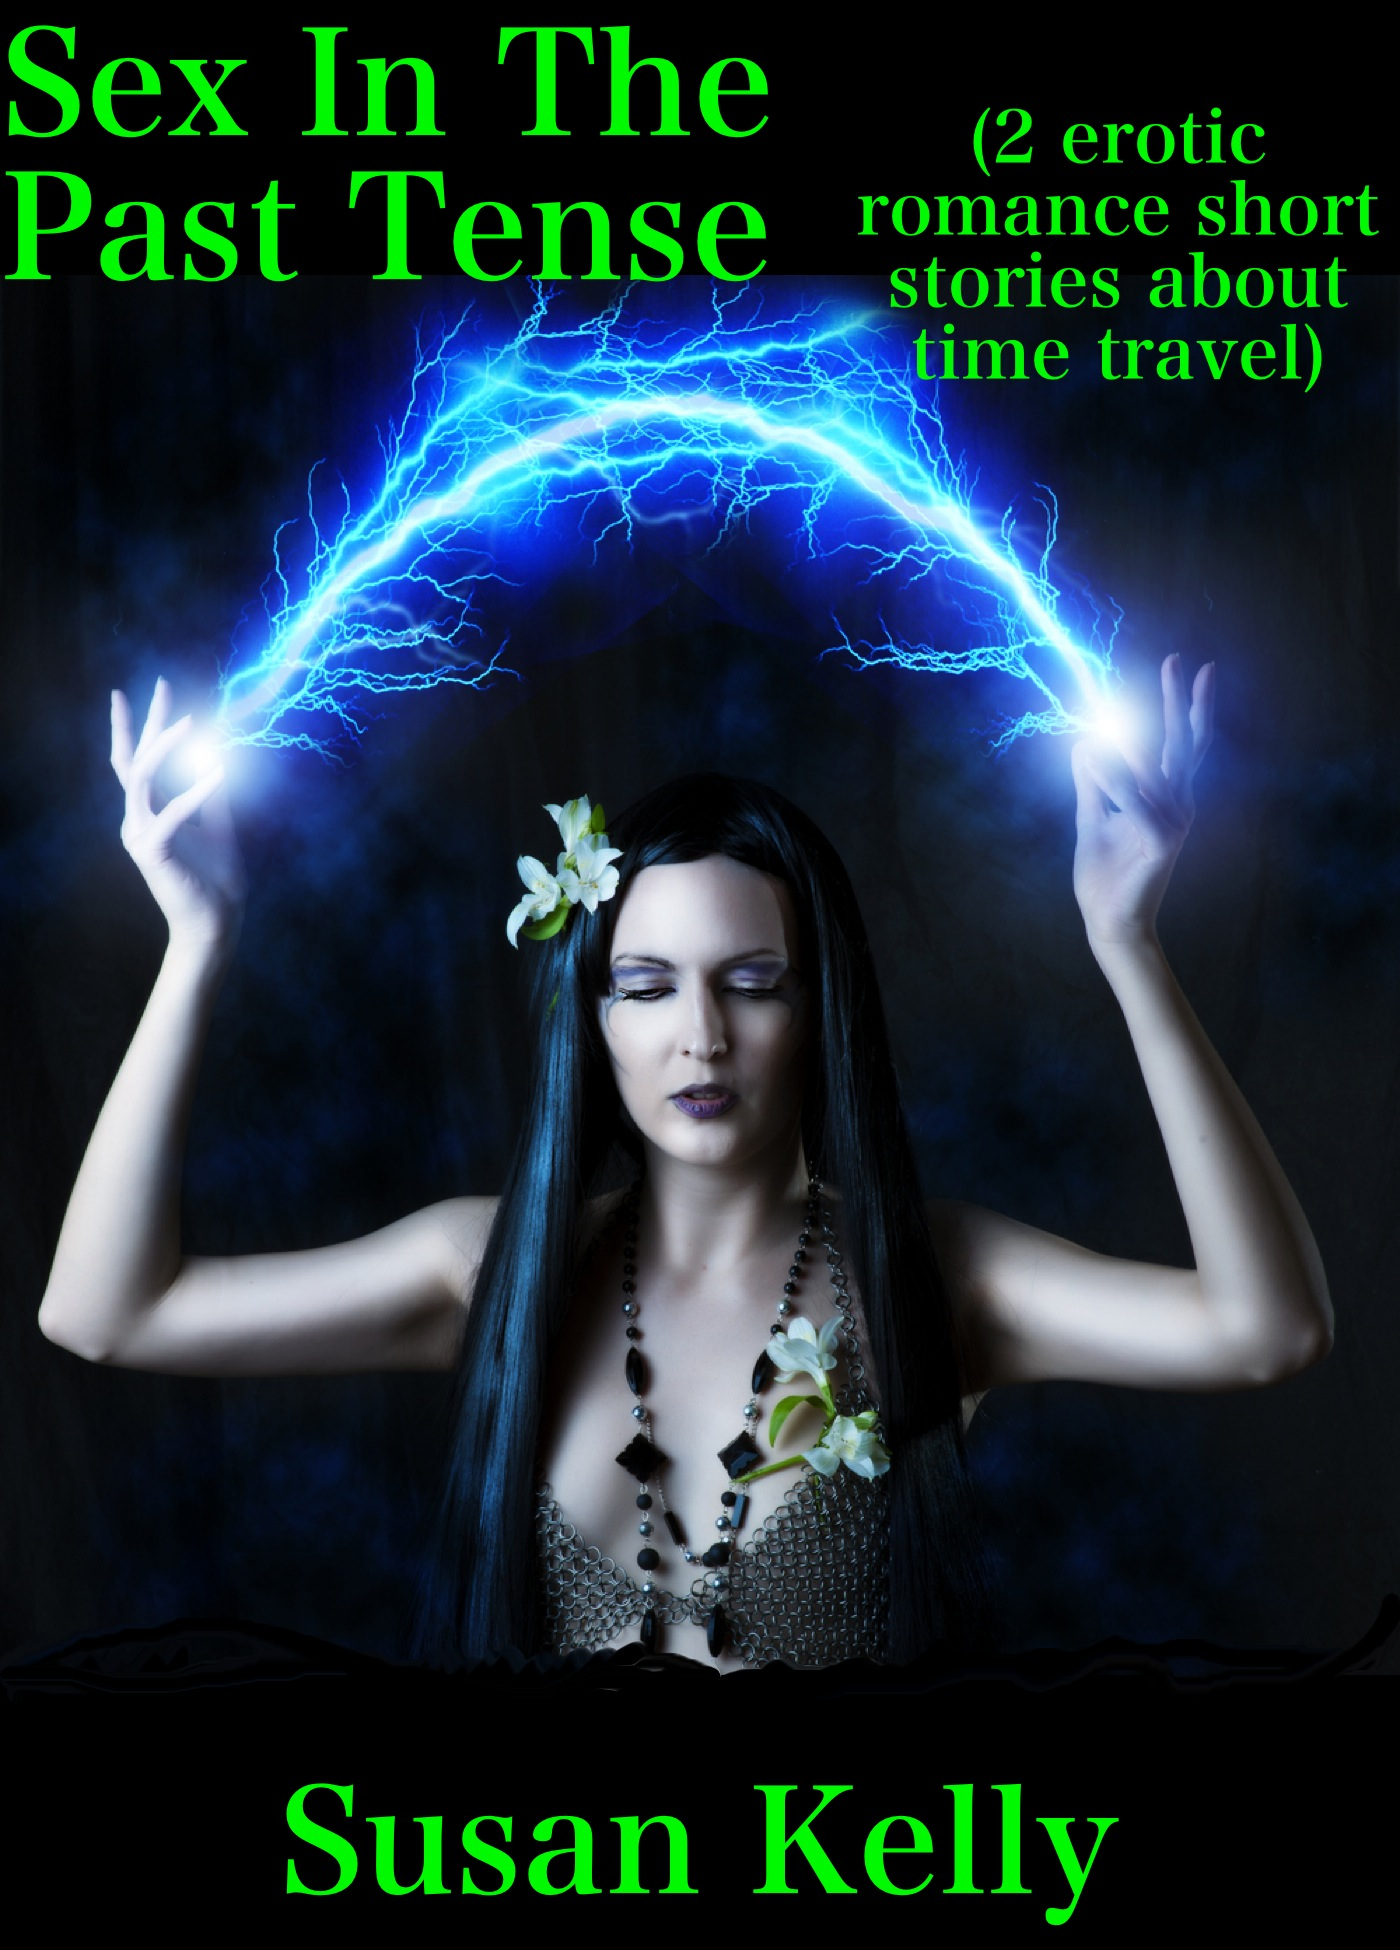 Sex In The Past Tense (2 erotic romance short stories about time travel)